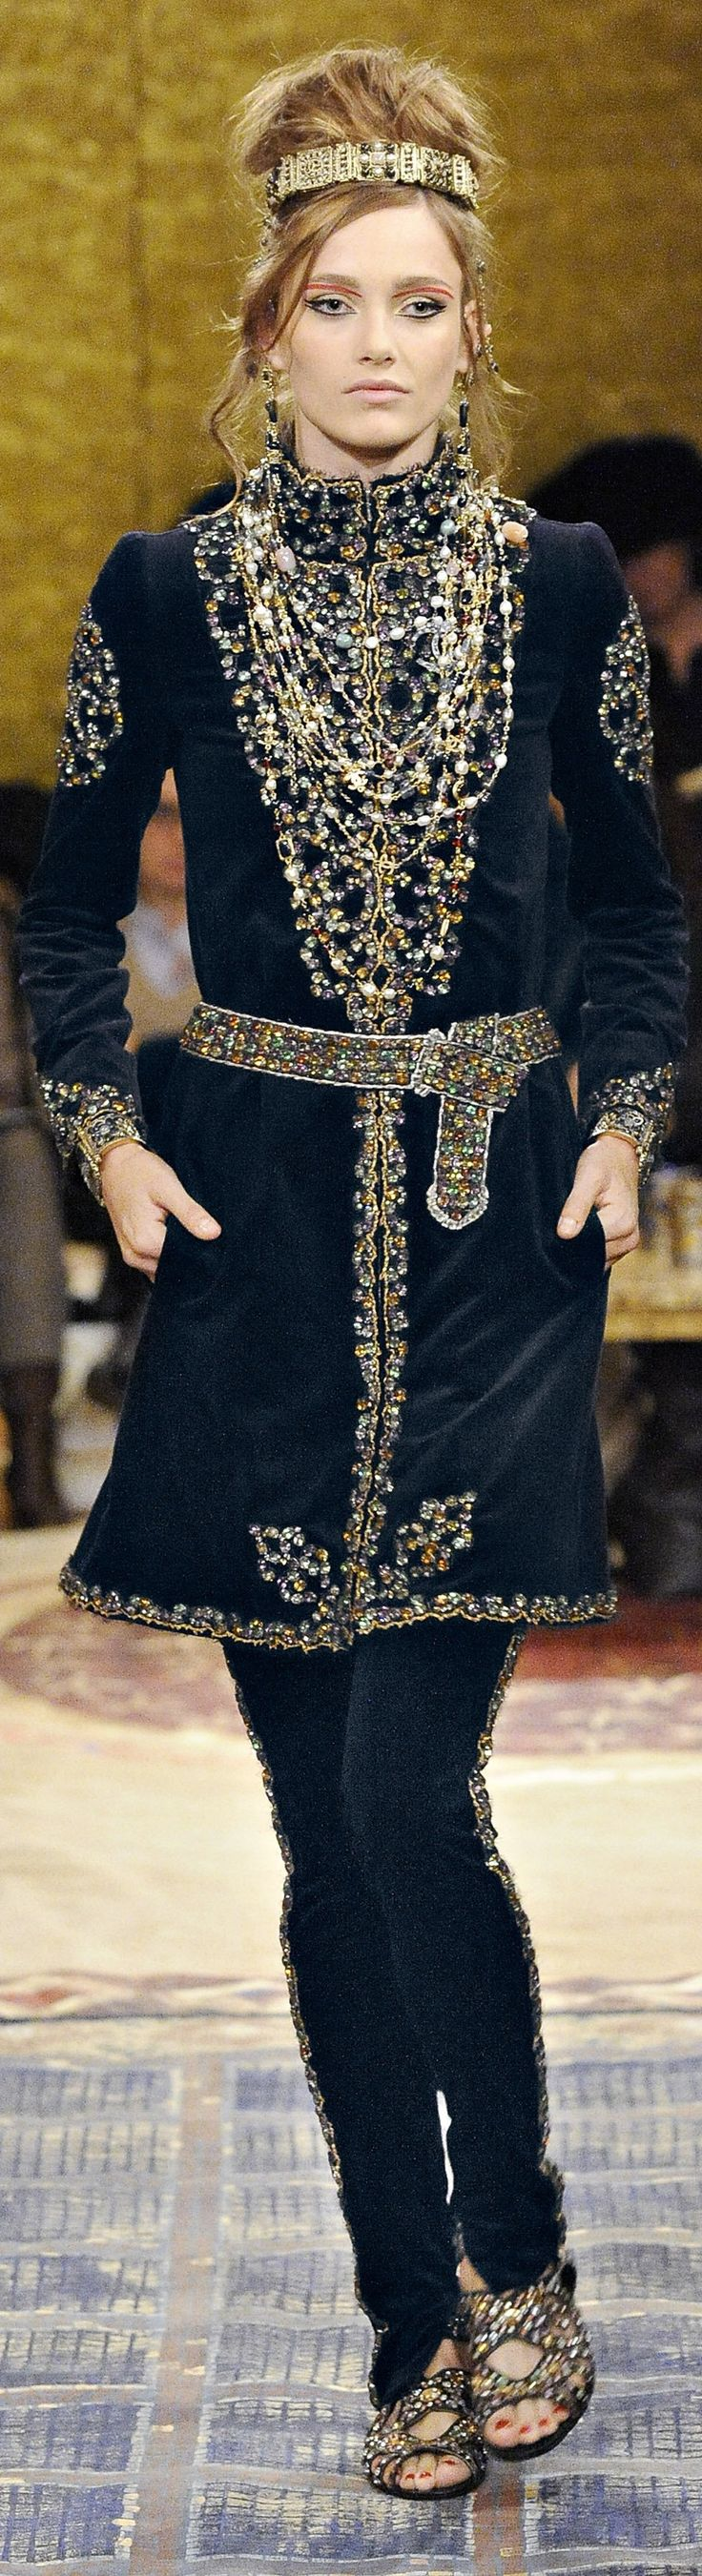 Chanel pre fall 2011 Paris Byzance collection